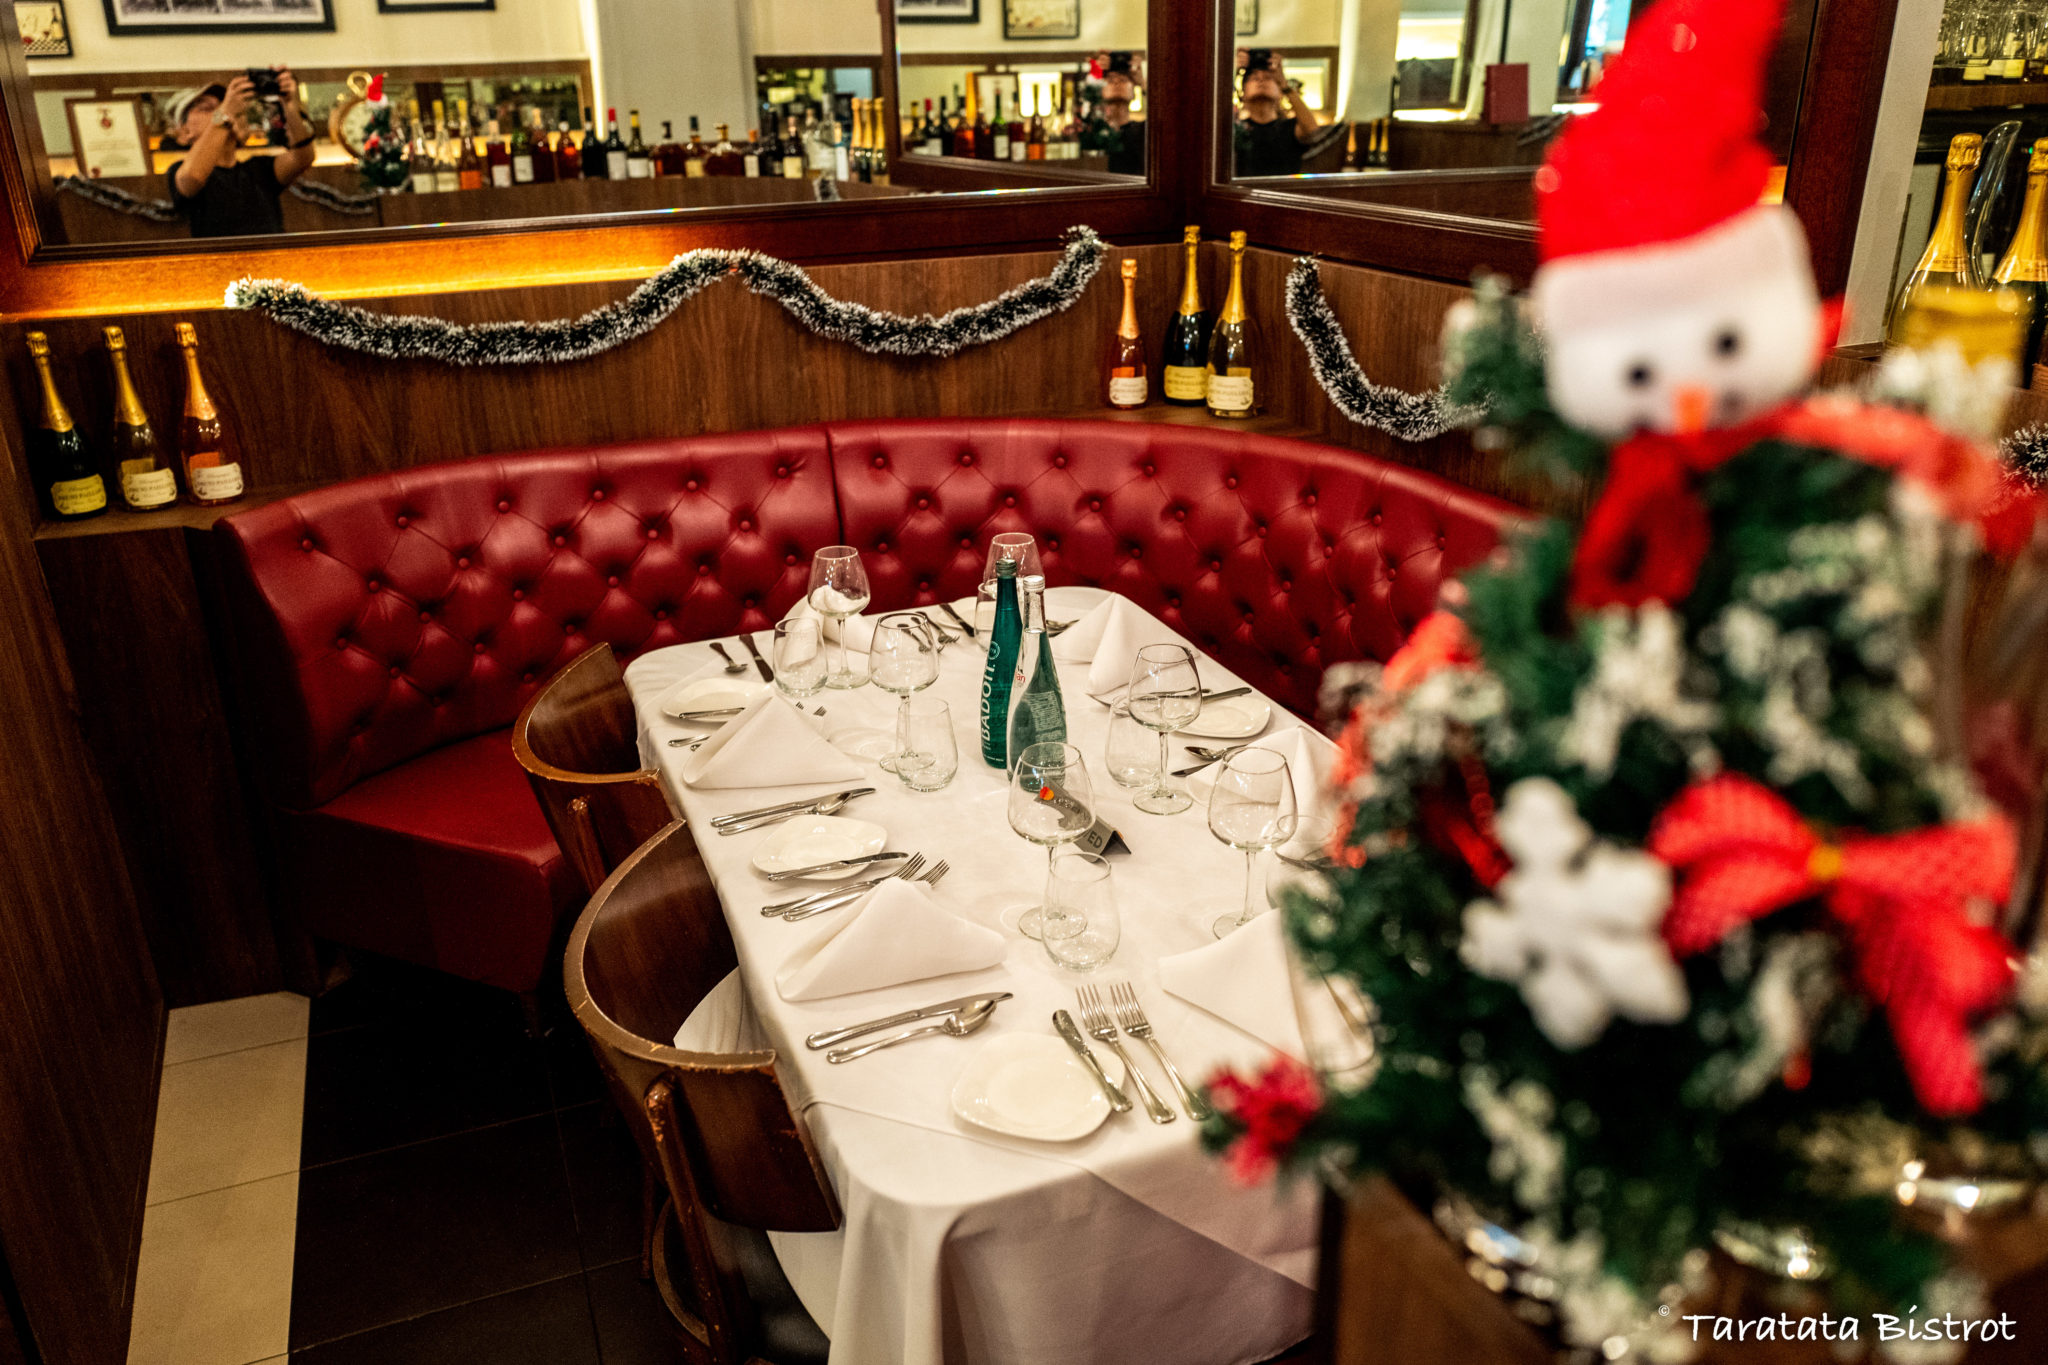 Christmas at Taratata Bistrot